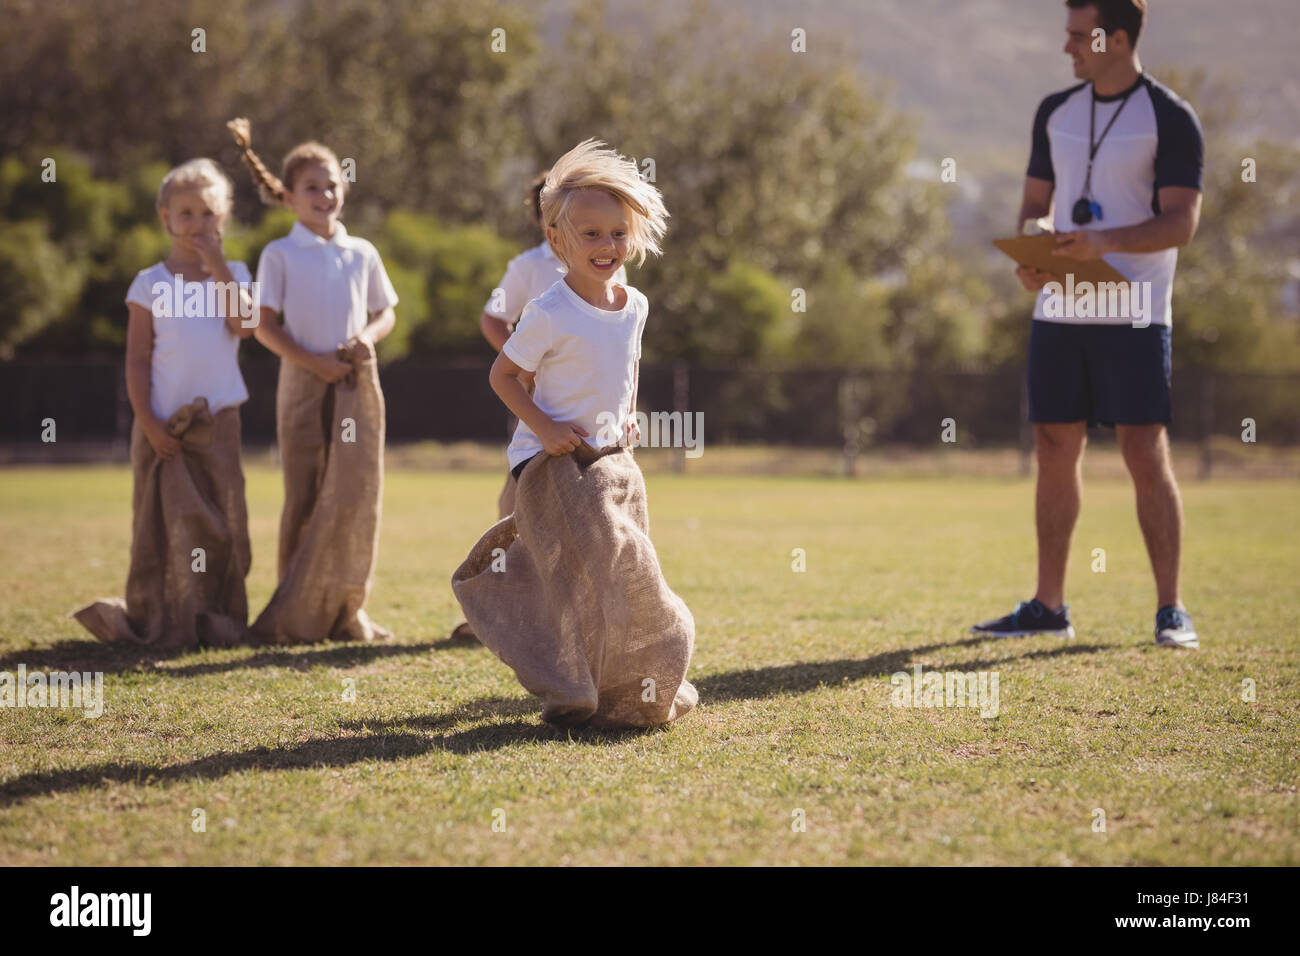 Coach monitoring schoolgirls during sack race in park on a sunny day - Stock Image